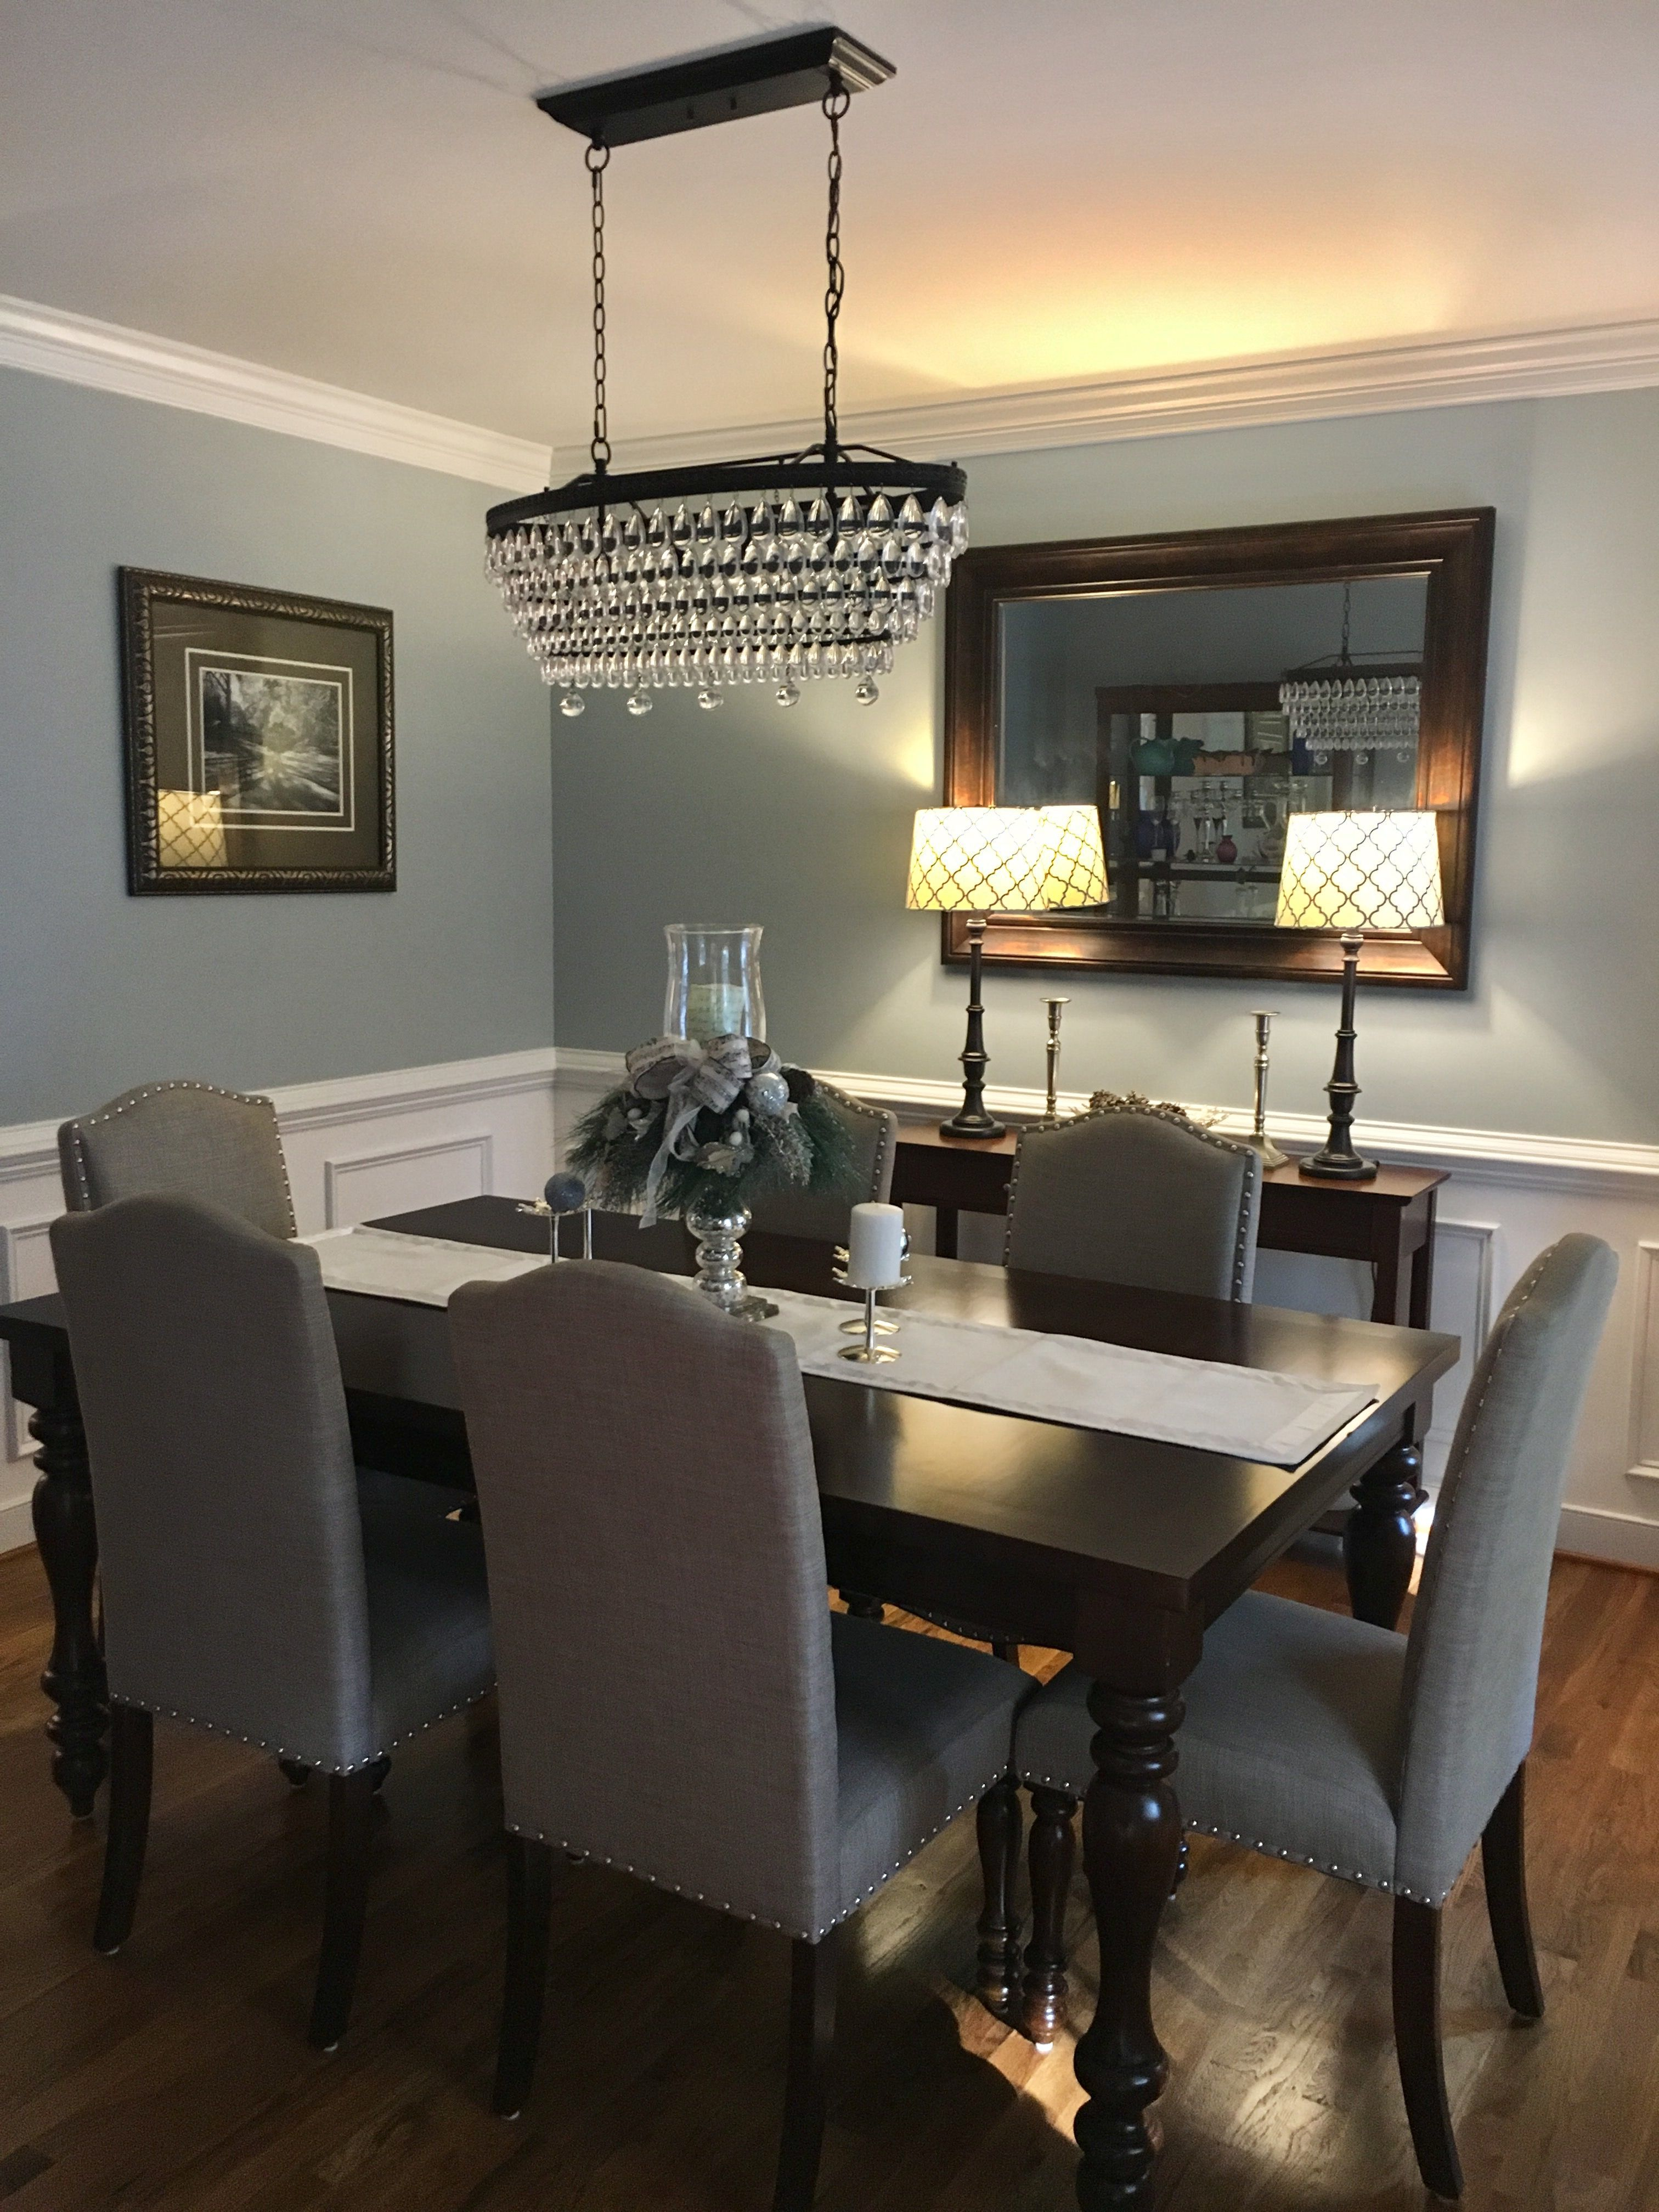 Pin By Amanda Rhodes Bishoff On Dining Room Re Do Dining